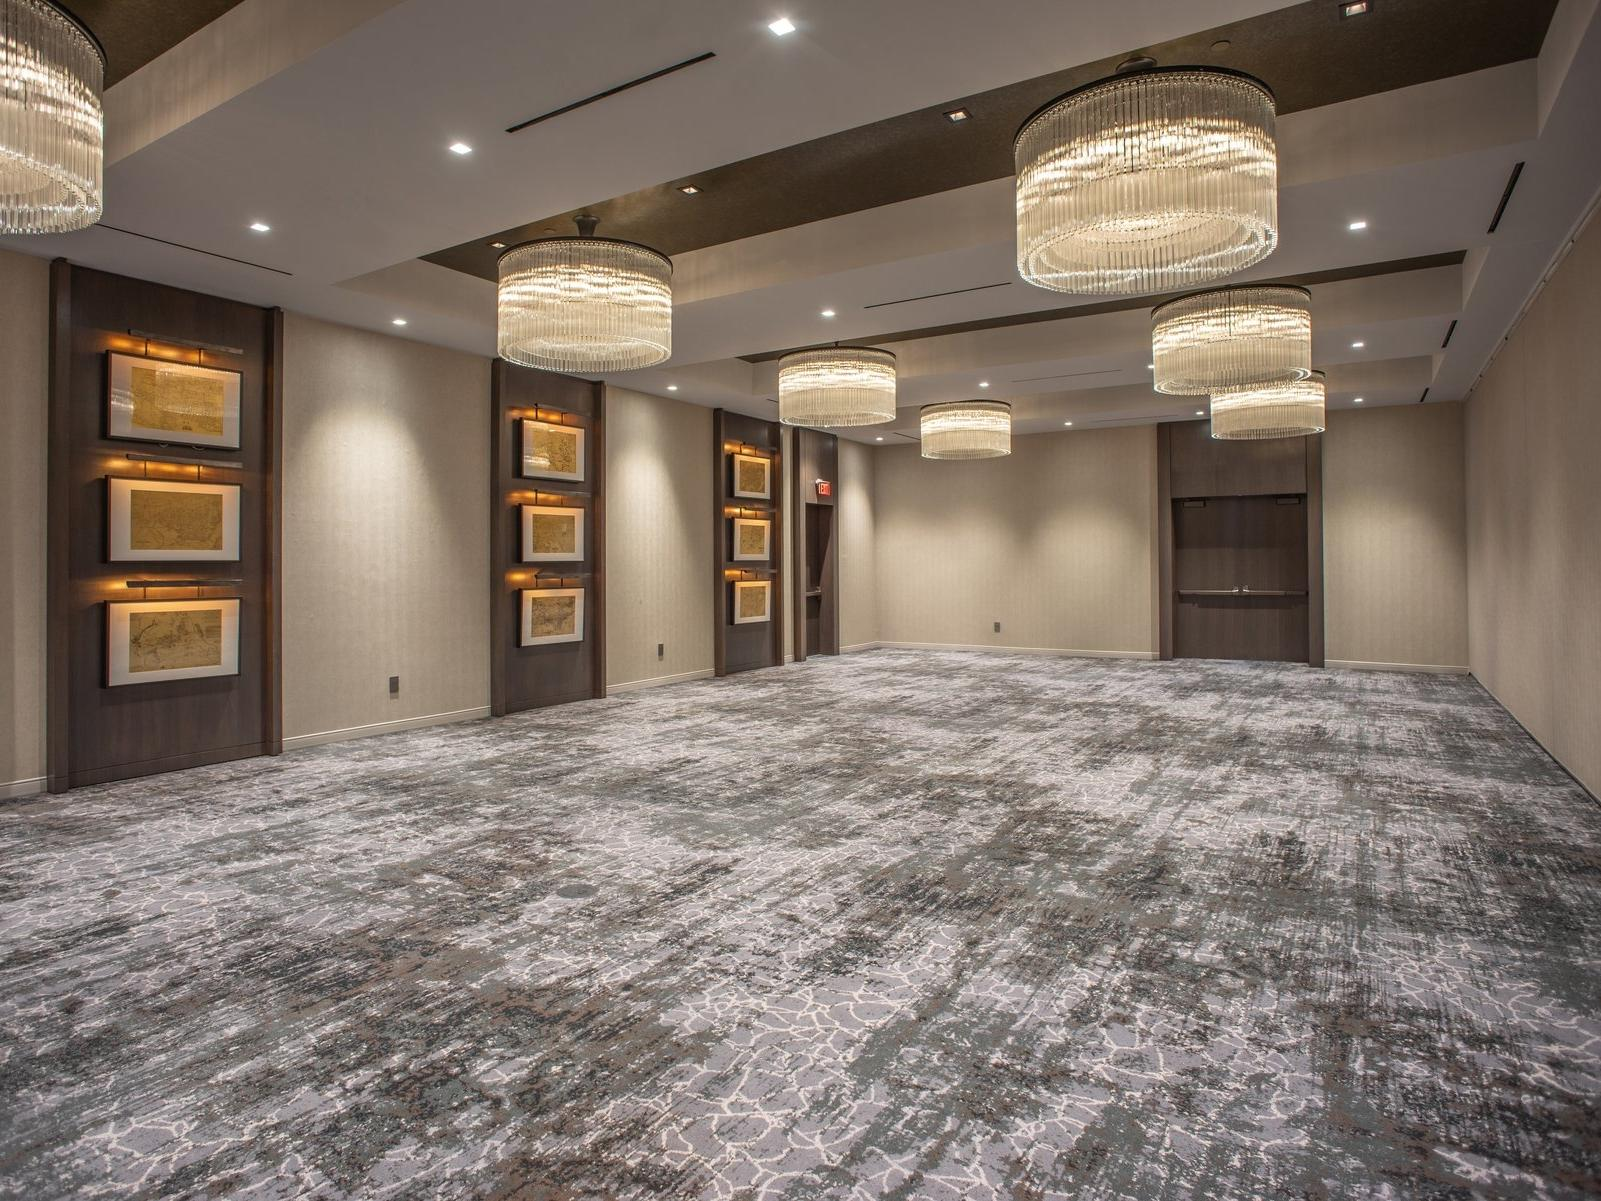 Empty meeting space with decorative chandeliers